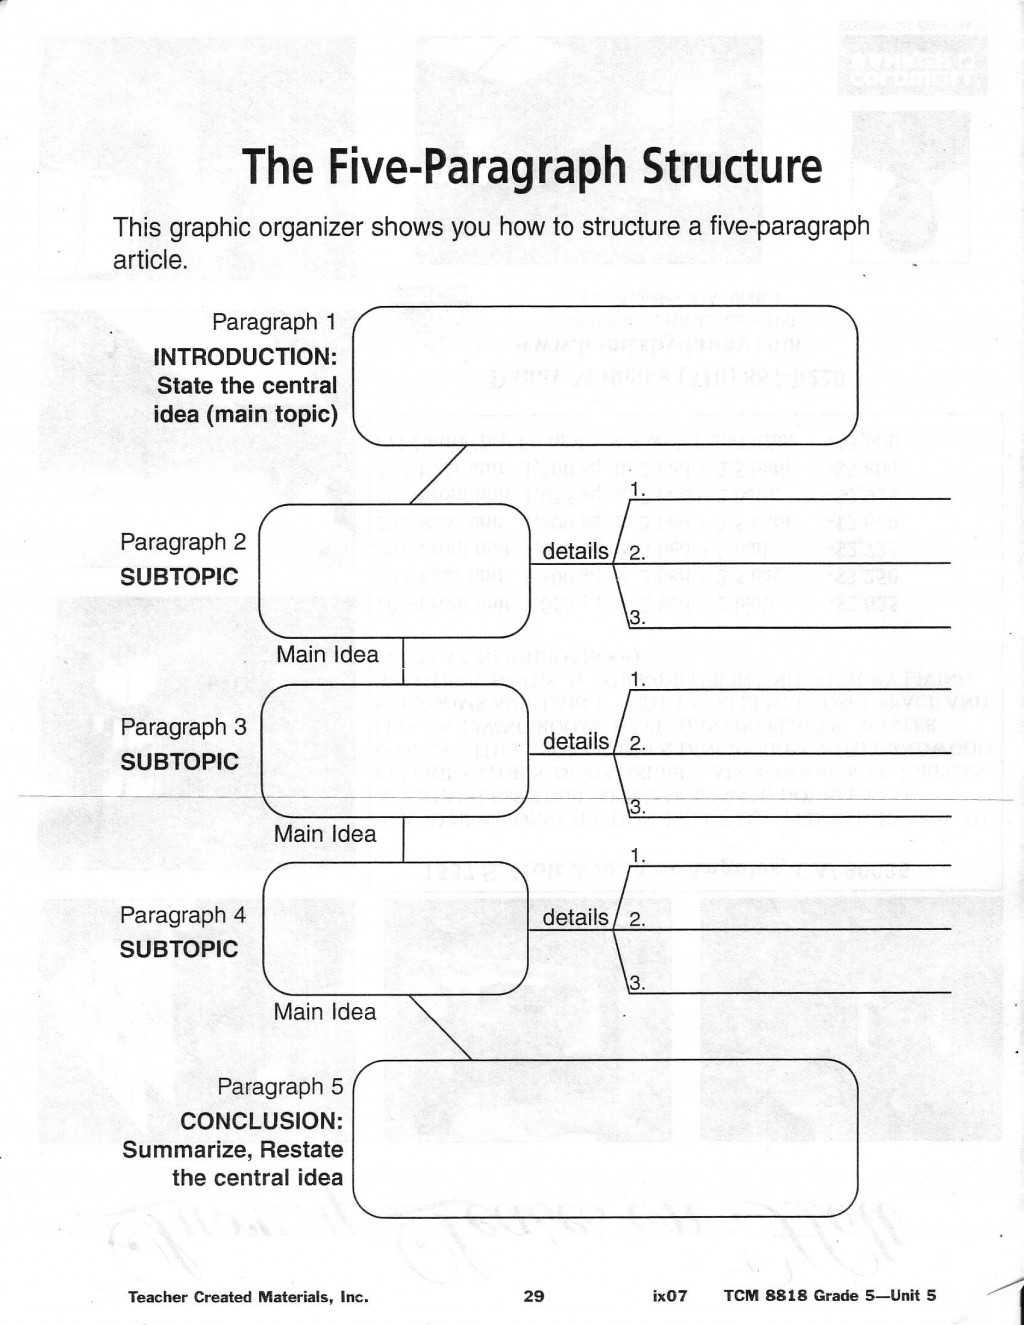 011 Essay Example Graphic Organizers For Writing Essays Organizer 563805 Marvelous 5 Paragraph Best Informative Large